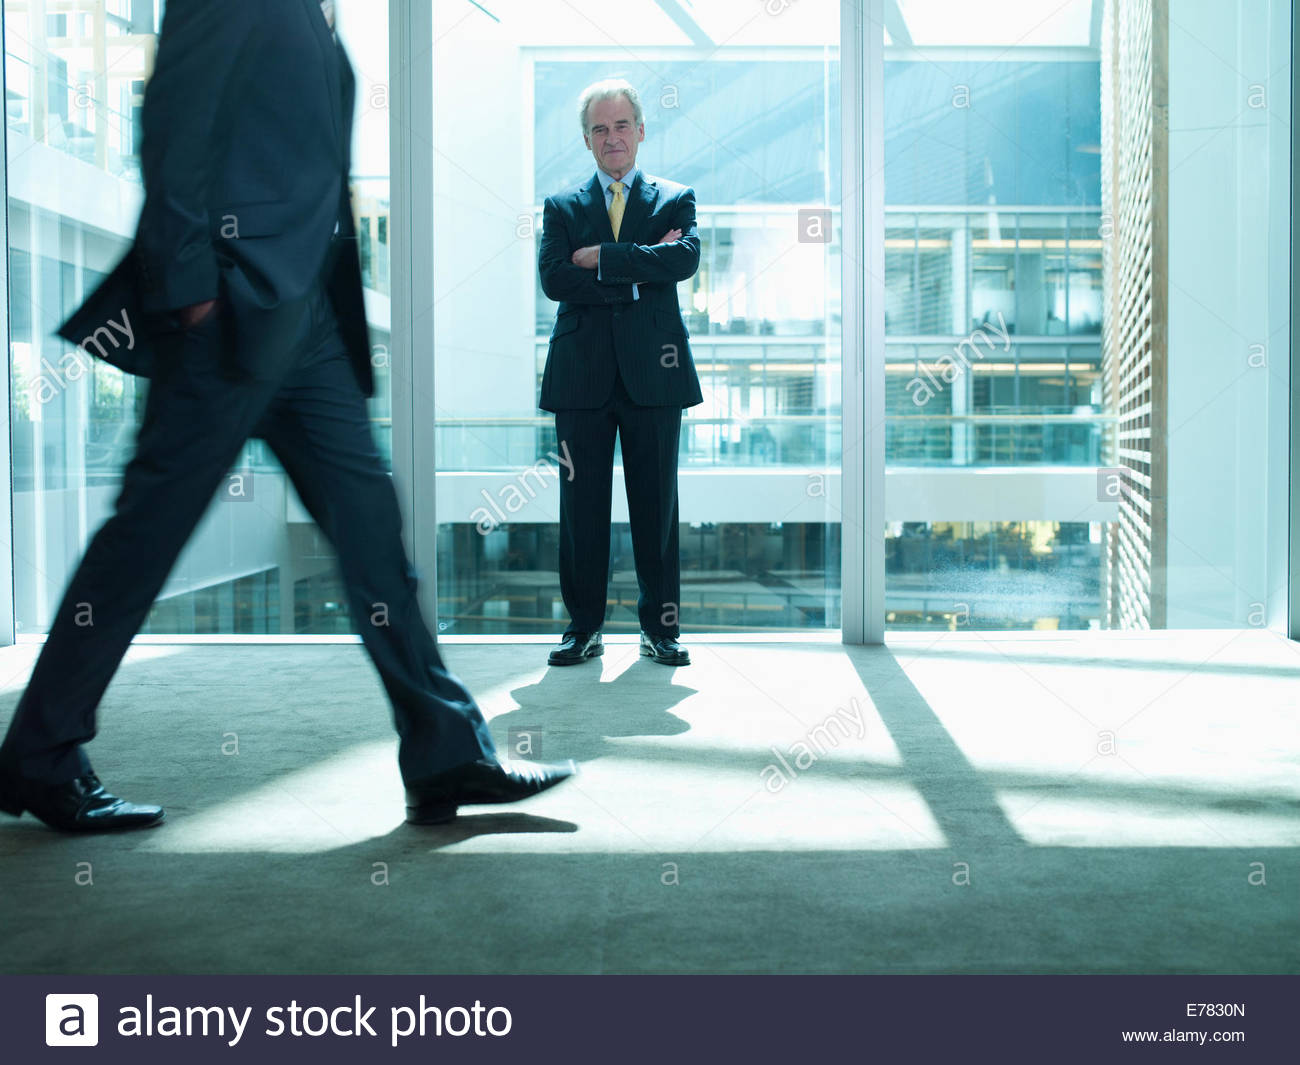 Businessman standing in corridor as co-worker rushes past - Stock Image